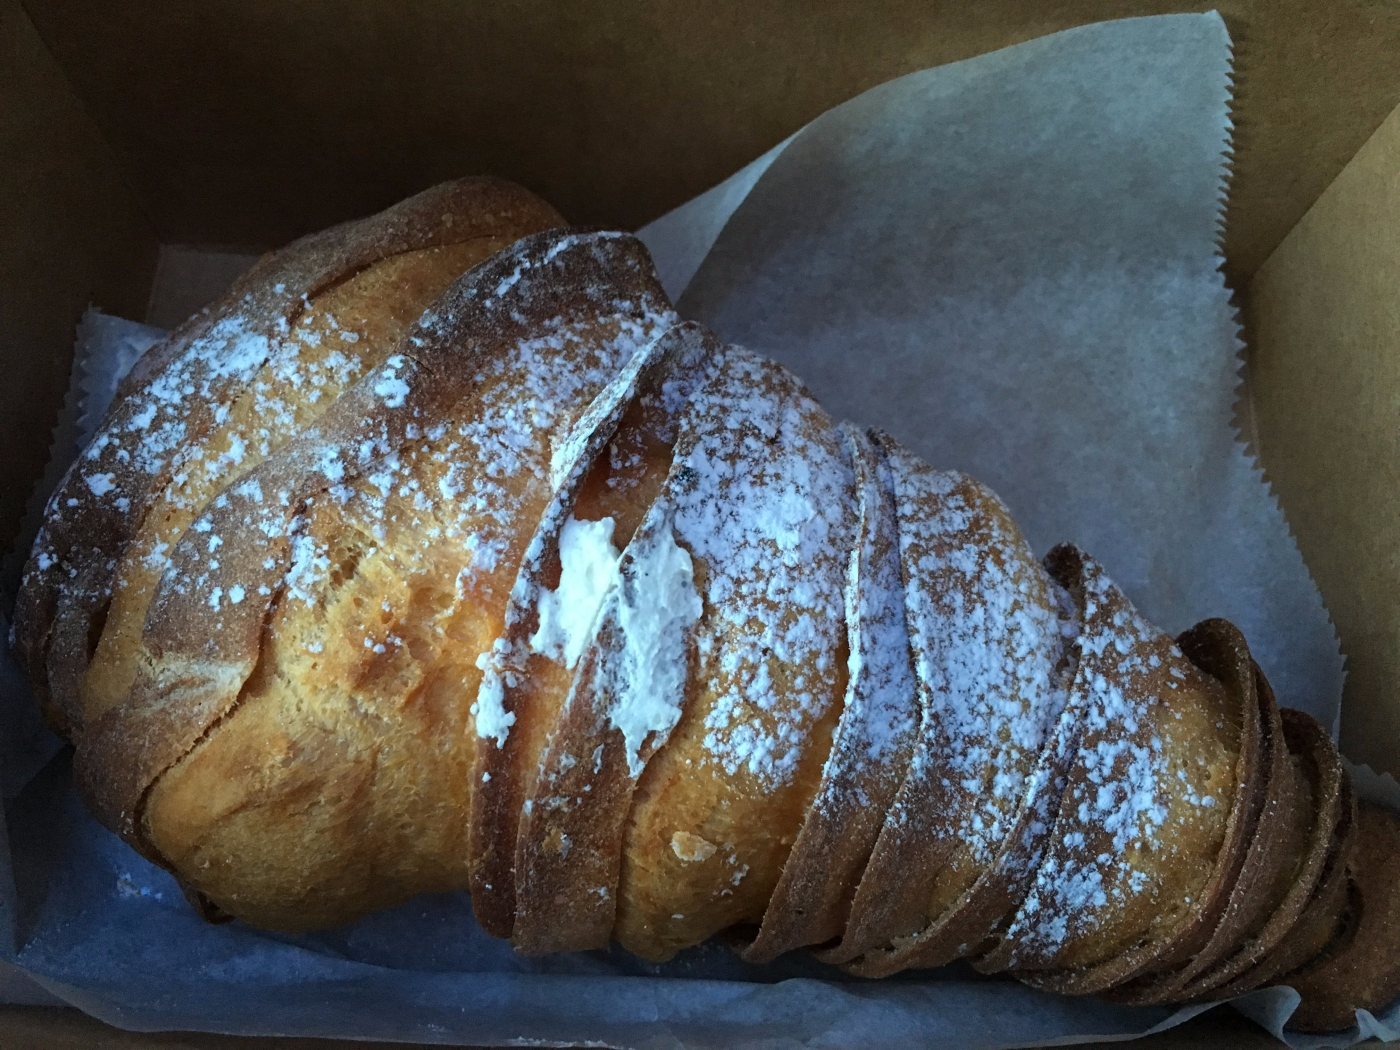 A Giant Lobster Tail Donut with Powdered Sugar from Mike's Pastry in Boston, Massachusetts